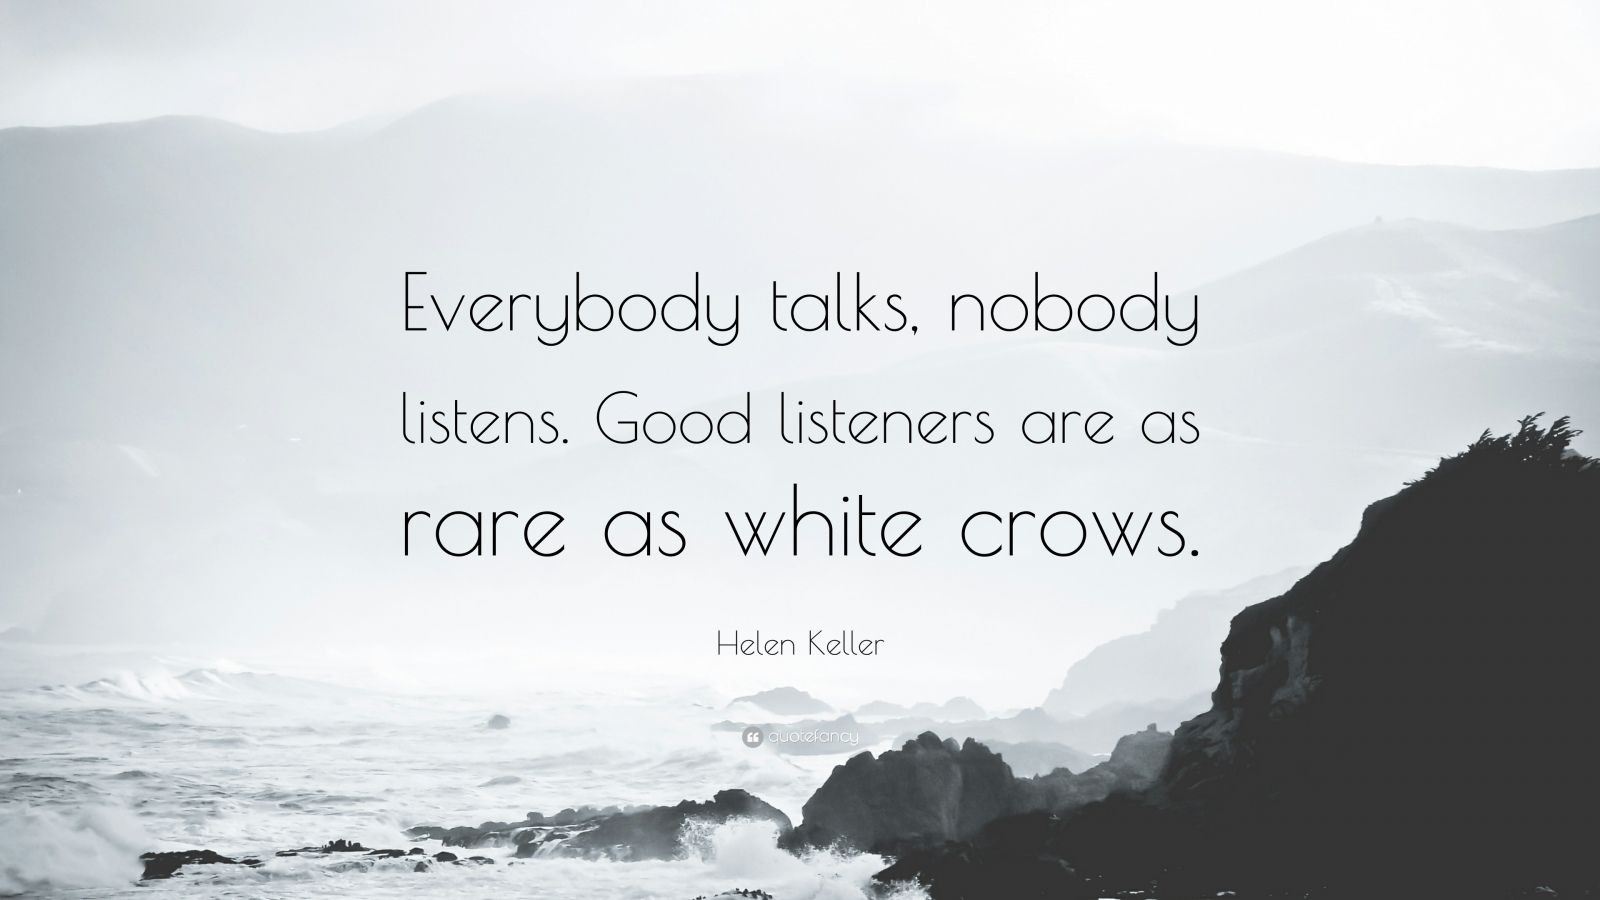 """Quotes About Listening: """"Everybody talks, nobody listens. Good listeners are as rare as white crows."""" — Helen Keller"""